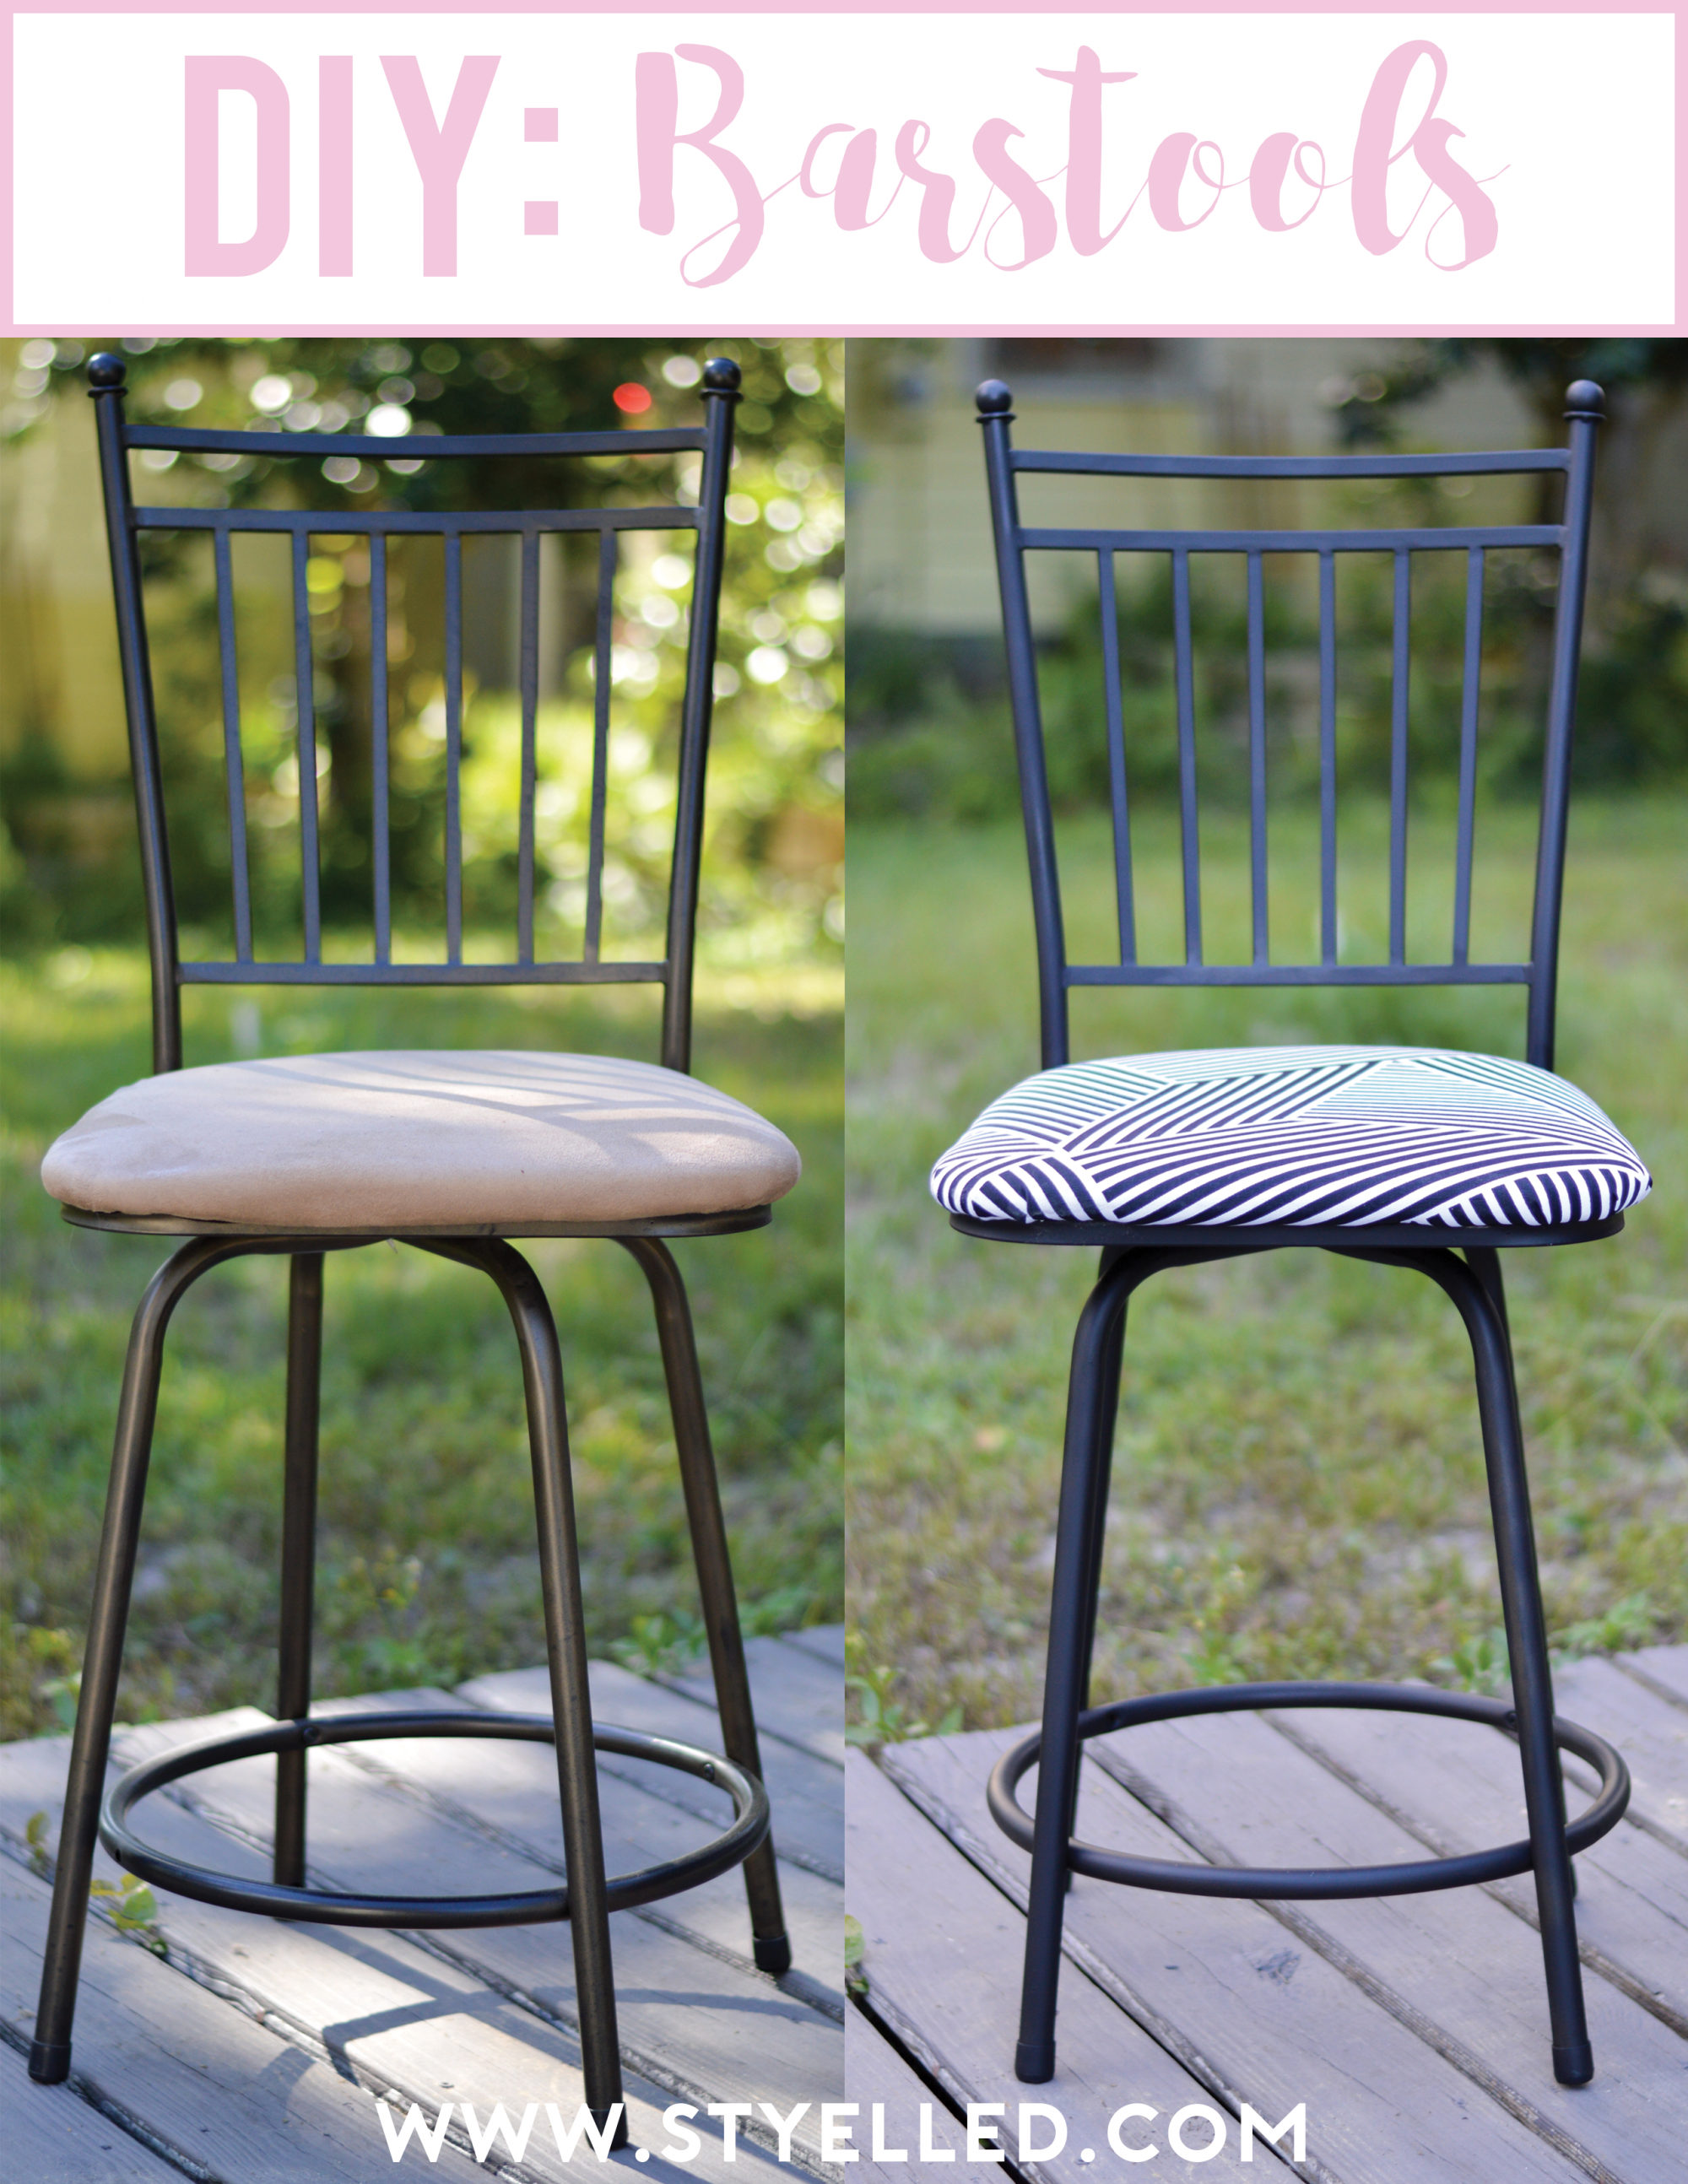 DIY: Turn your Barstools from Drab to Fab